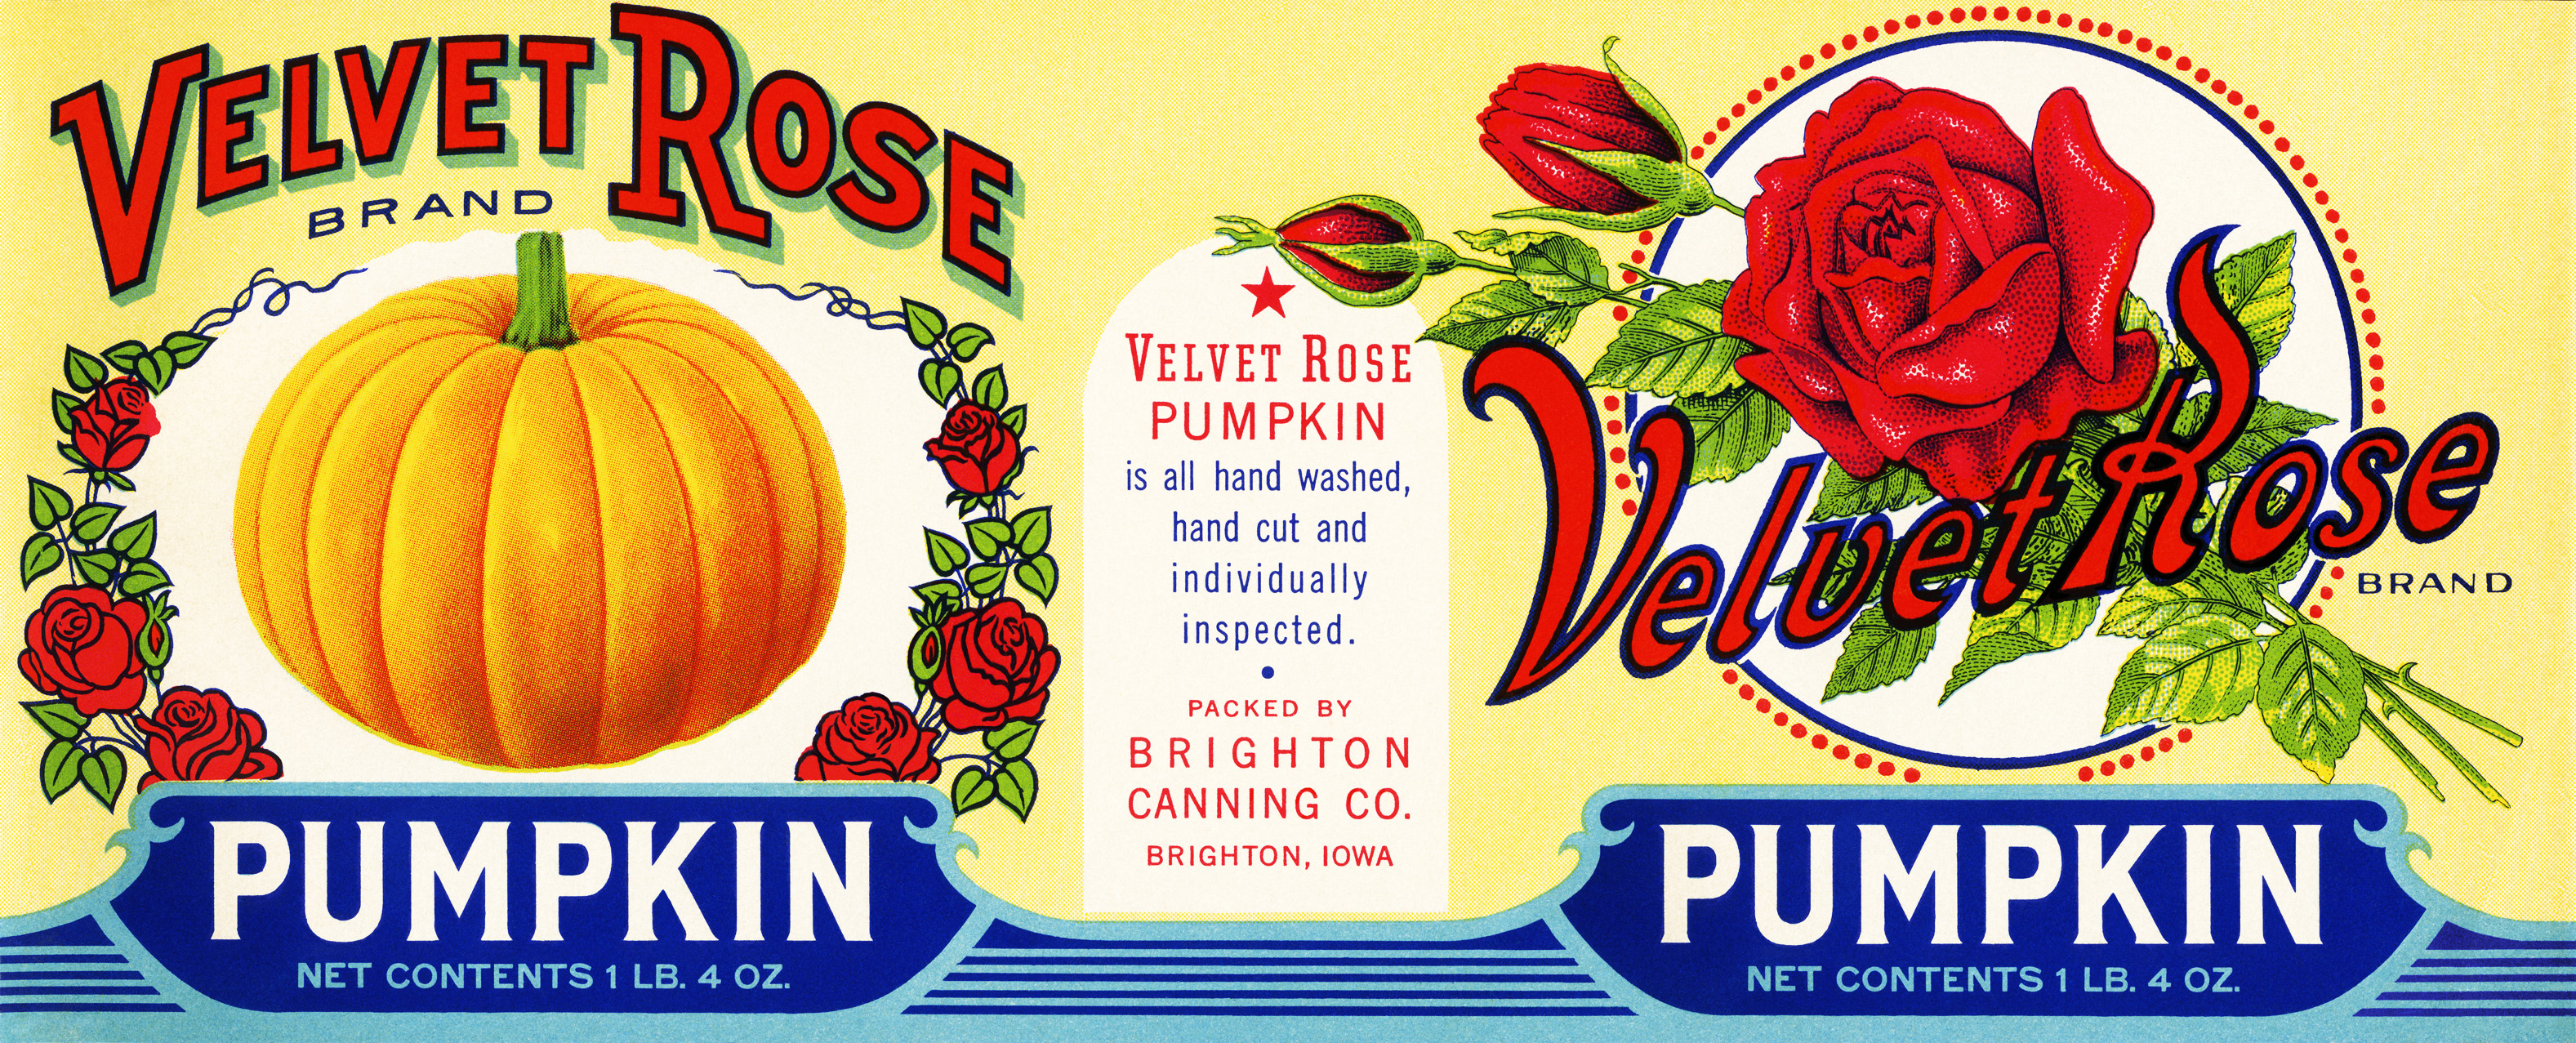 velvet rose pumpkin label, vintage pumpkin label, antique food label, free vintage pumpkin graphic, free printable label, pumpkin rose can label, public domain label